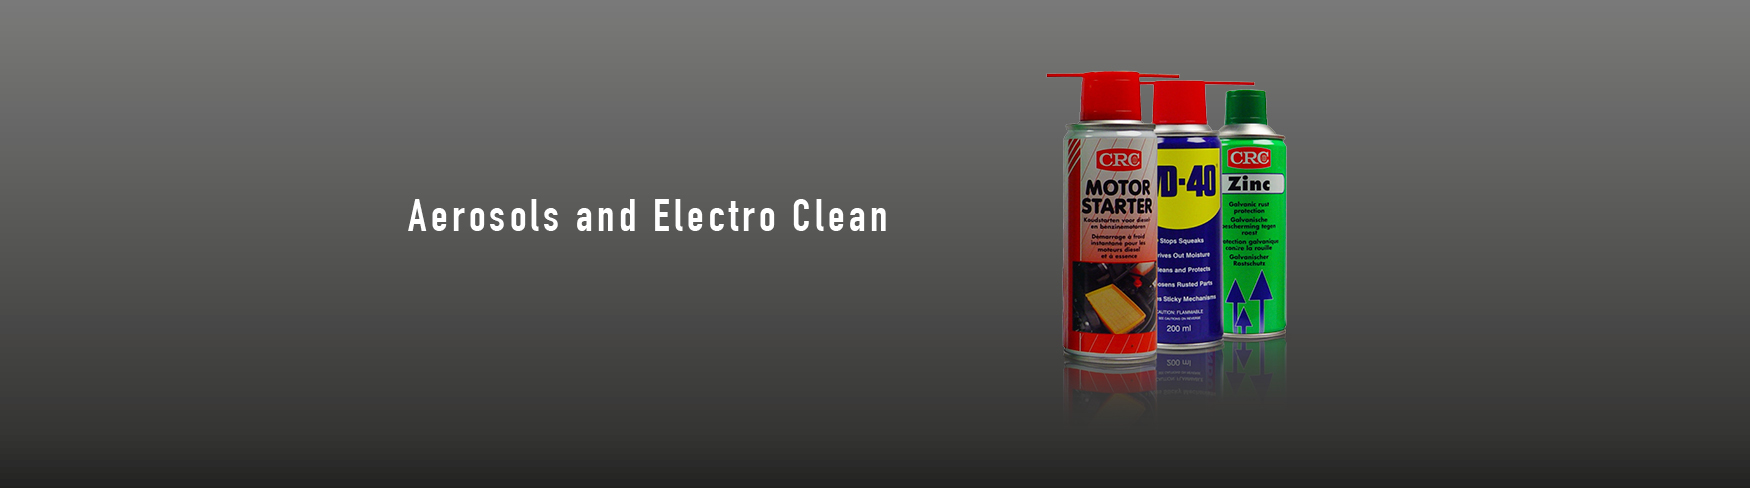 Aerosols and Electro Clean